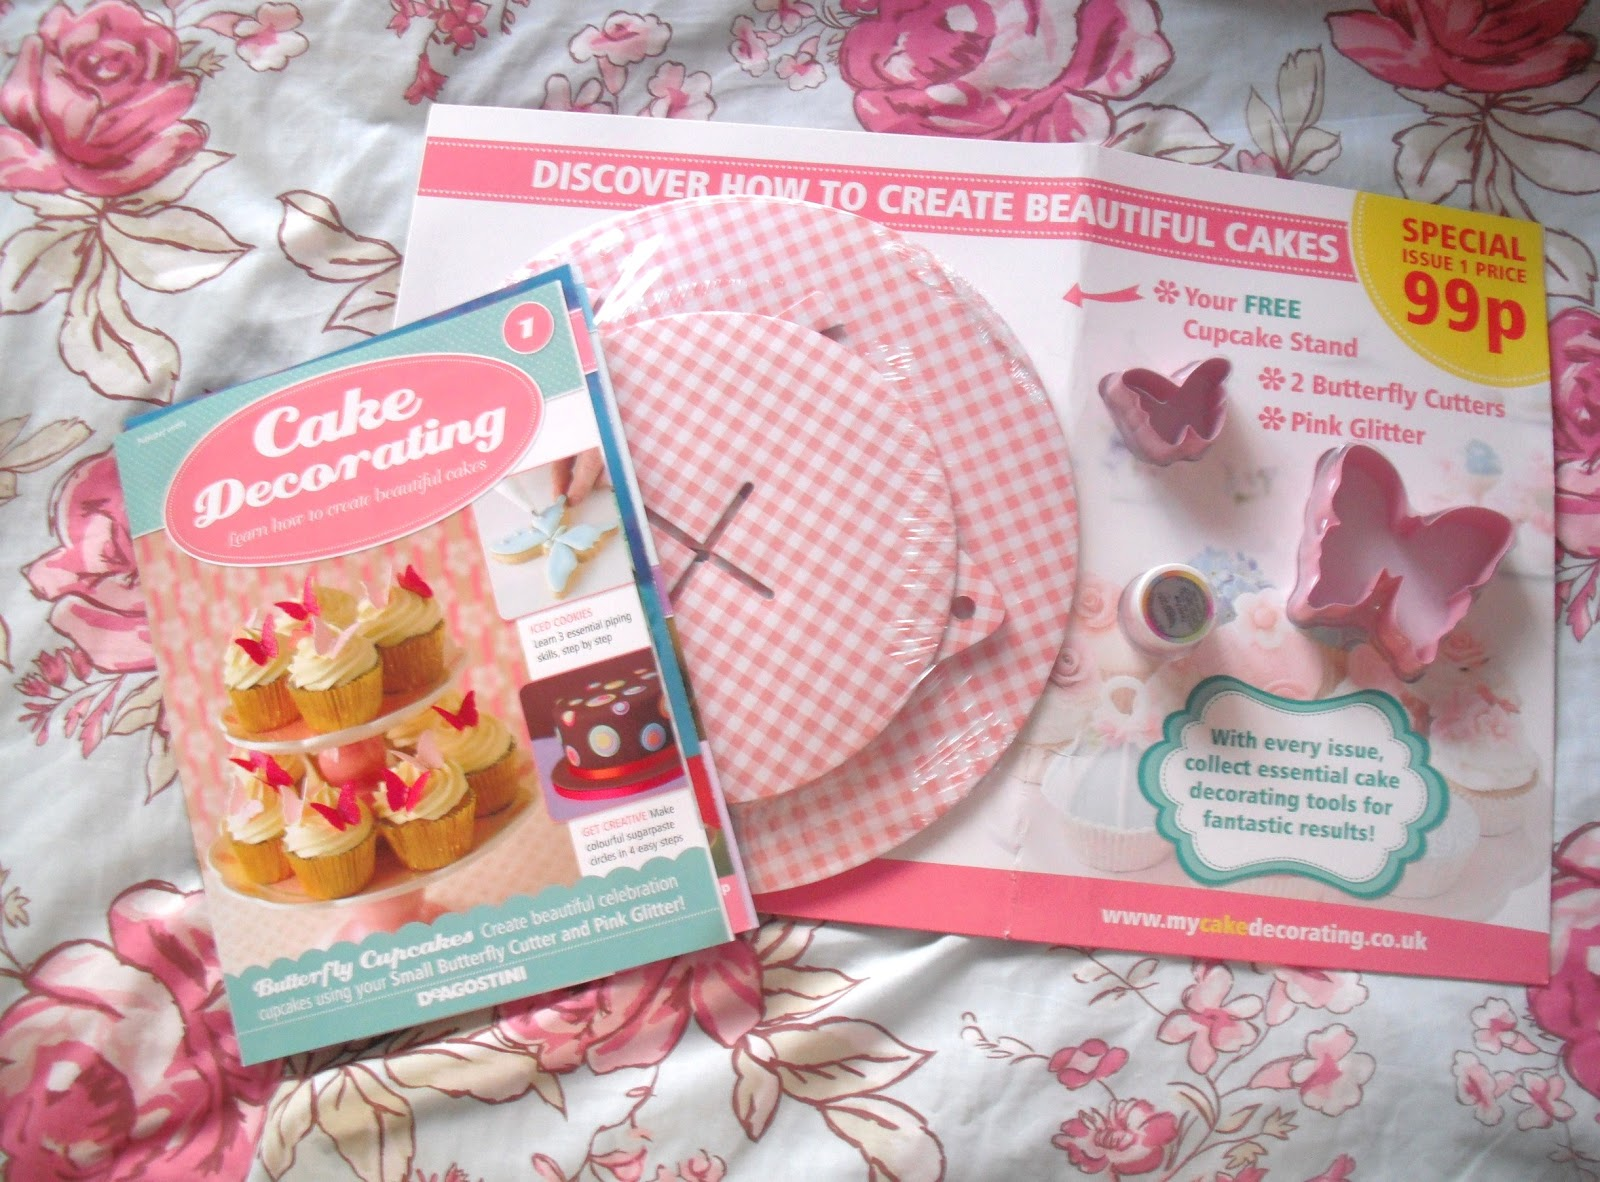 The Magazine Is Simply Called Cake Decorating And The Free Gifts It Came With Were A Pink Gingham Printed Cardboard Cupcake Stand A Pot Of Pink Edible